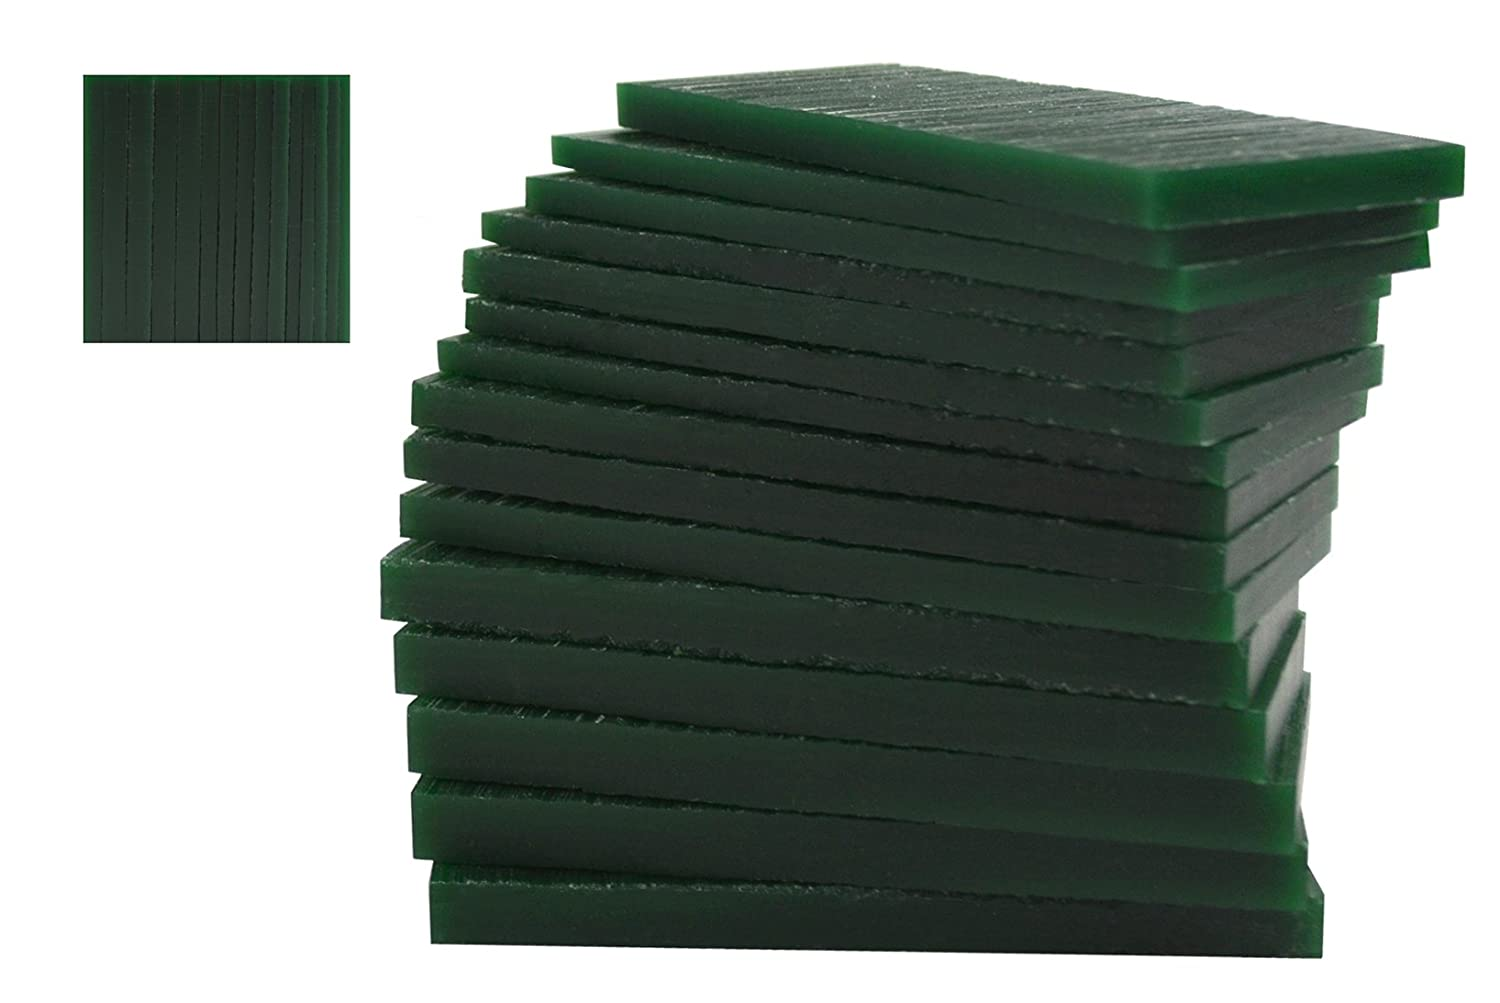 15 Piece Assortment of 1/2 Lb Dark Green Wax Carving Block Jewelry Pattern Making Machining Hard Melting Modeling Wax Slices PMC Supplies WAX-332.25